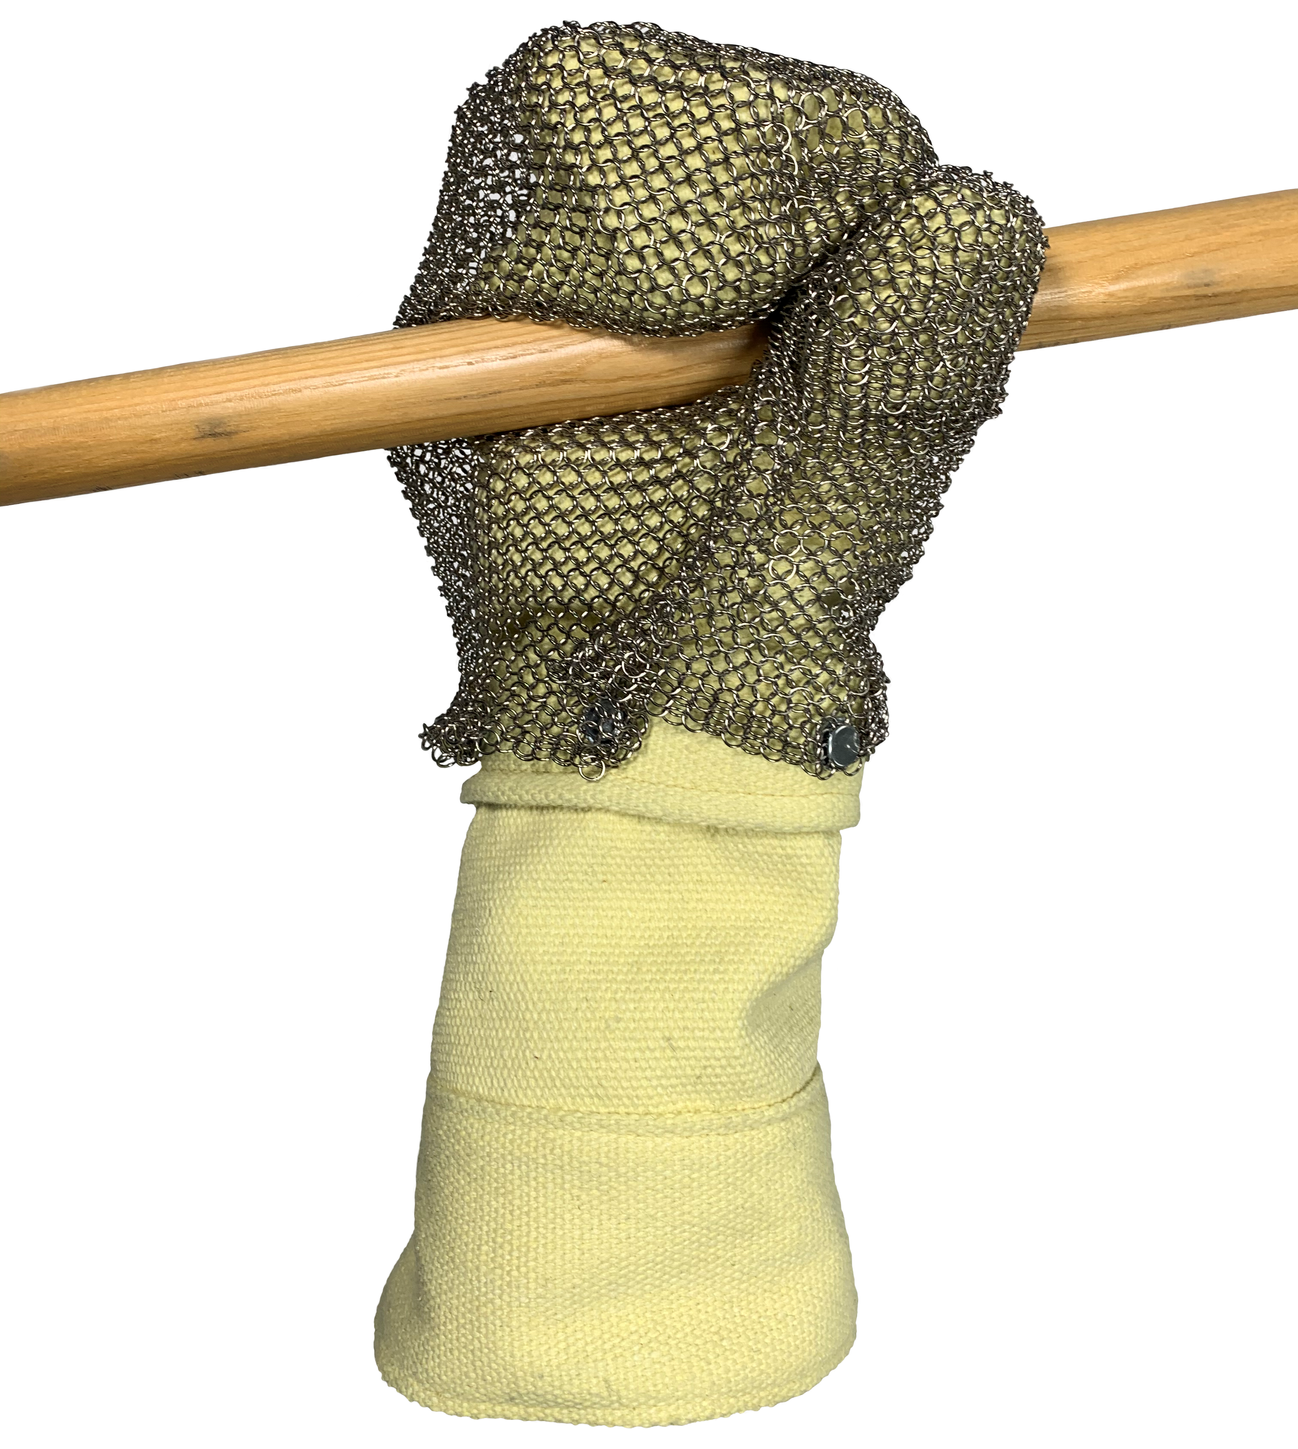 chicago-protective-apparel-para-aramid-blend-mitten-with-stainless-steel-chain-mail-overmitt-example.png